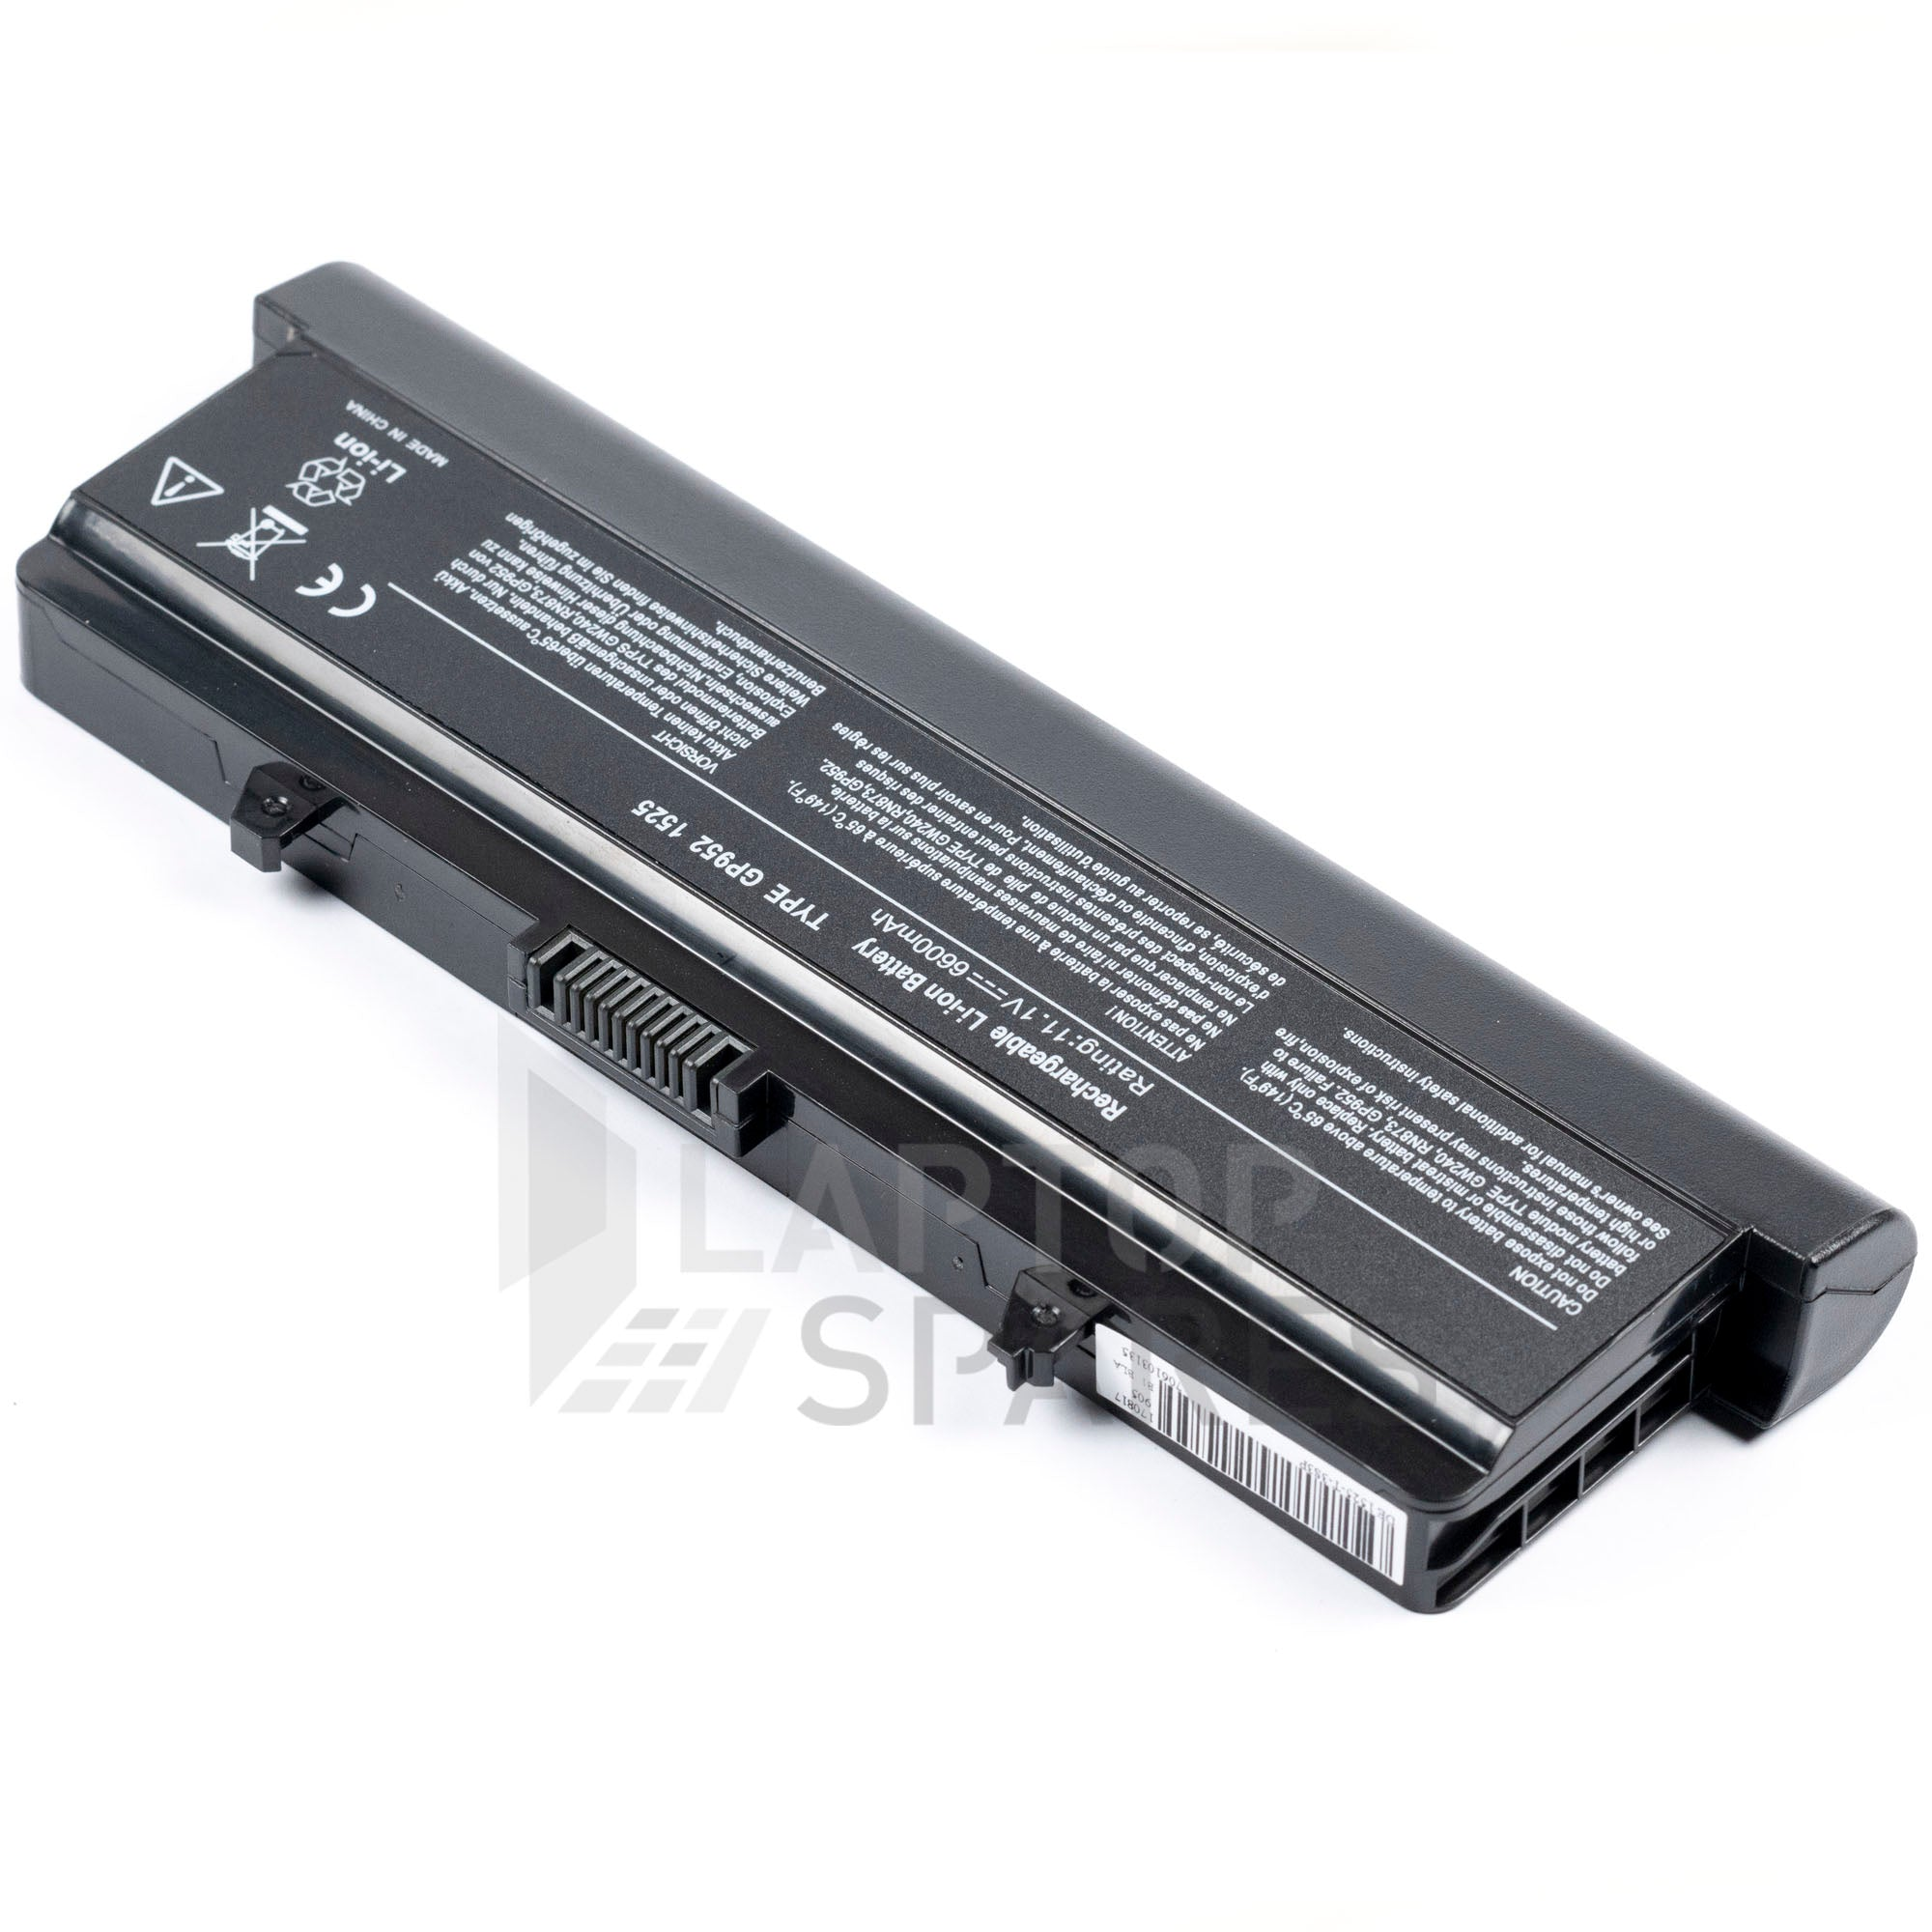 Dell Inspiron 1525 6600mAh 9 Cell Battery